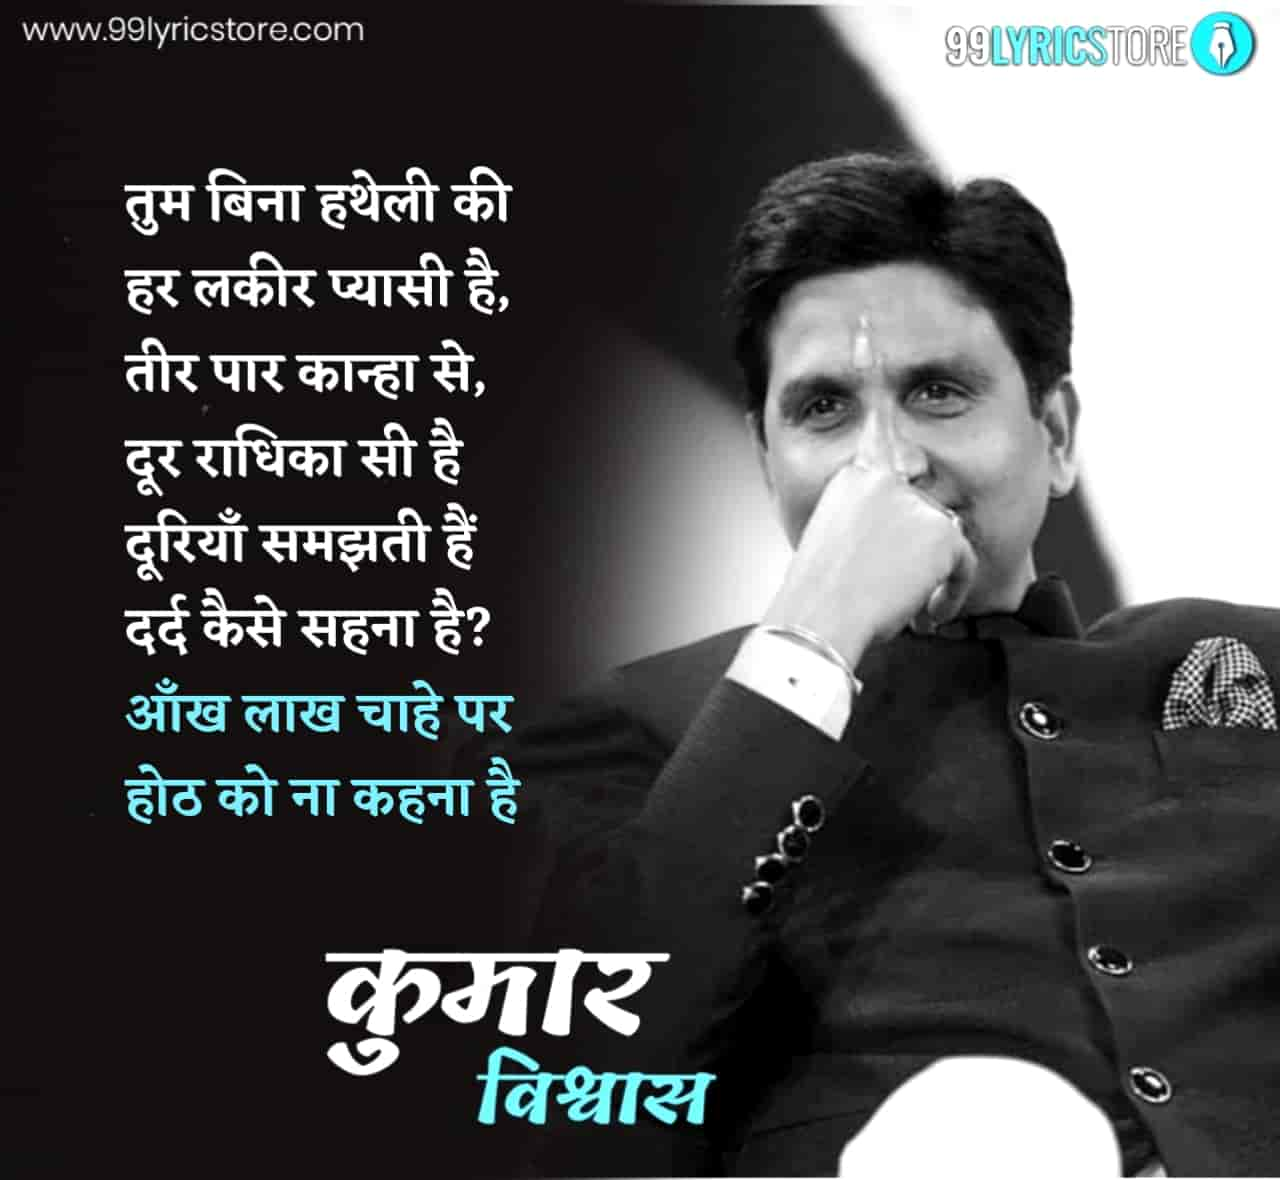 This beautiful poem 'Geet Ga Na Paunga' is written by the famous young poet Dr. Kumar Vishwas.